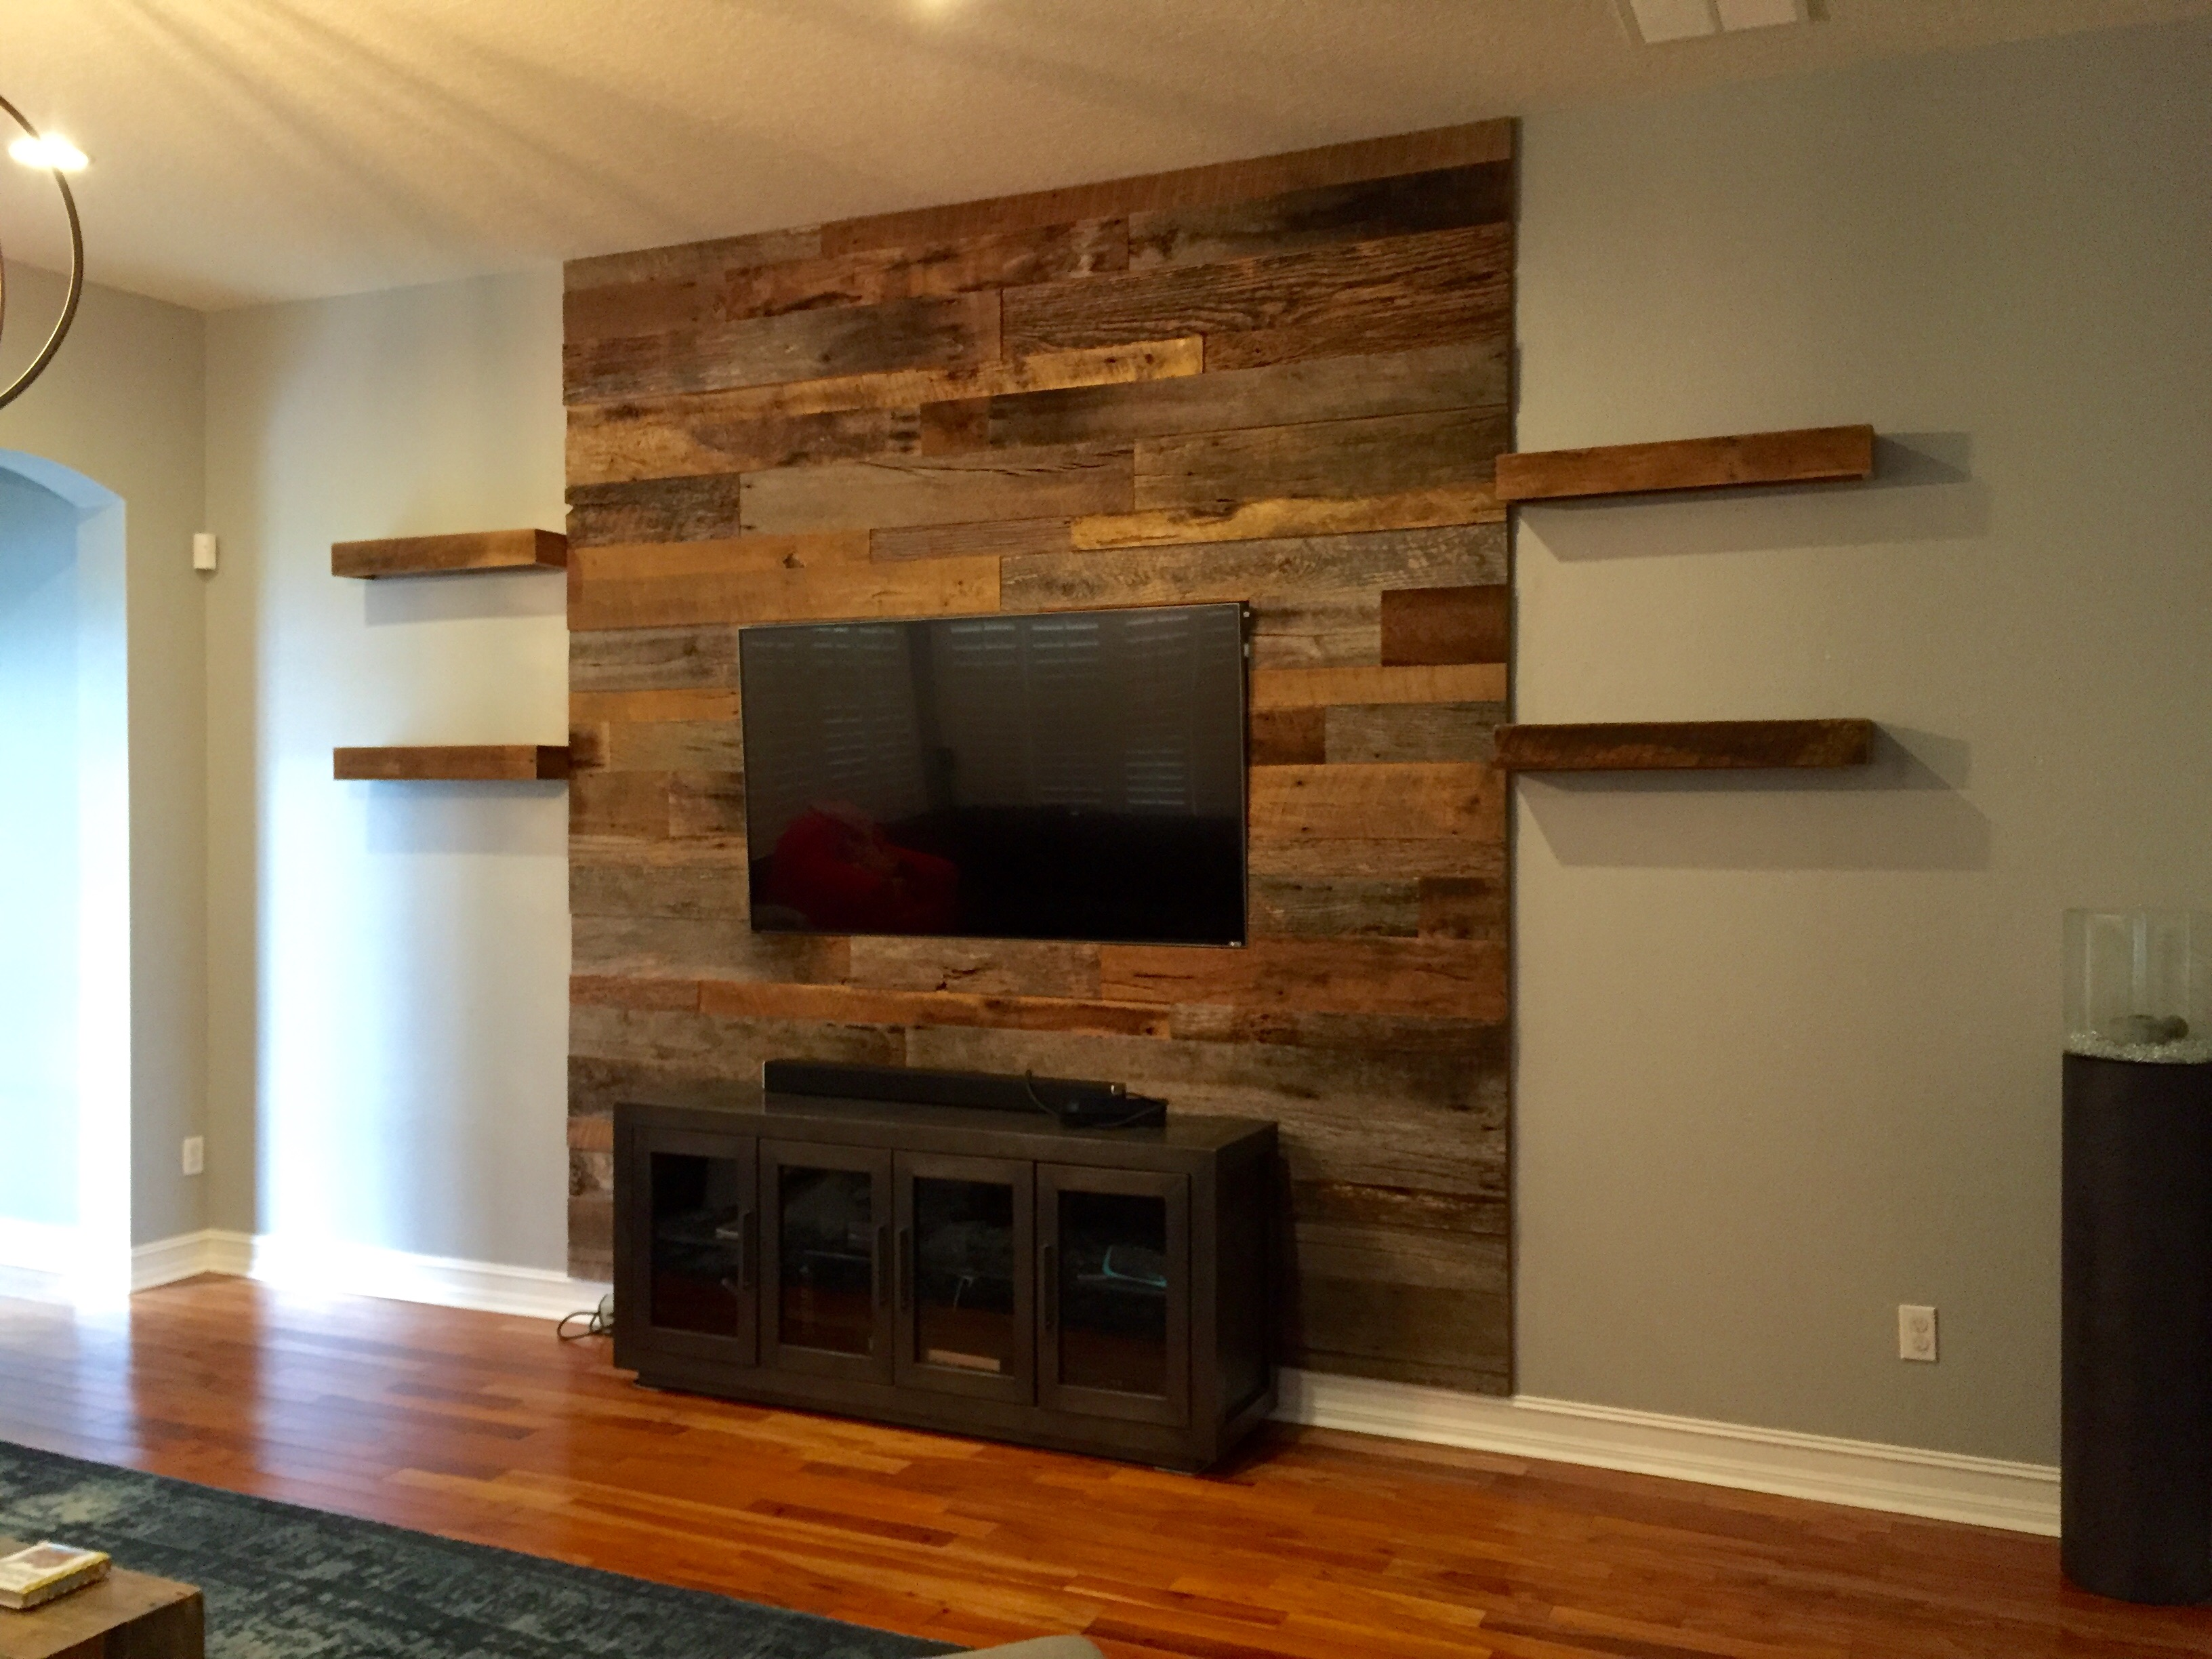 Design Wood Accent Wall trevors reclaimed barn wood accent wall with shelving fama creations